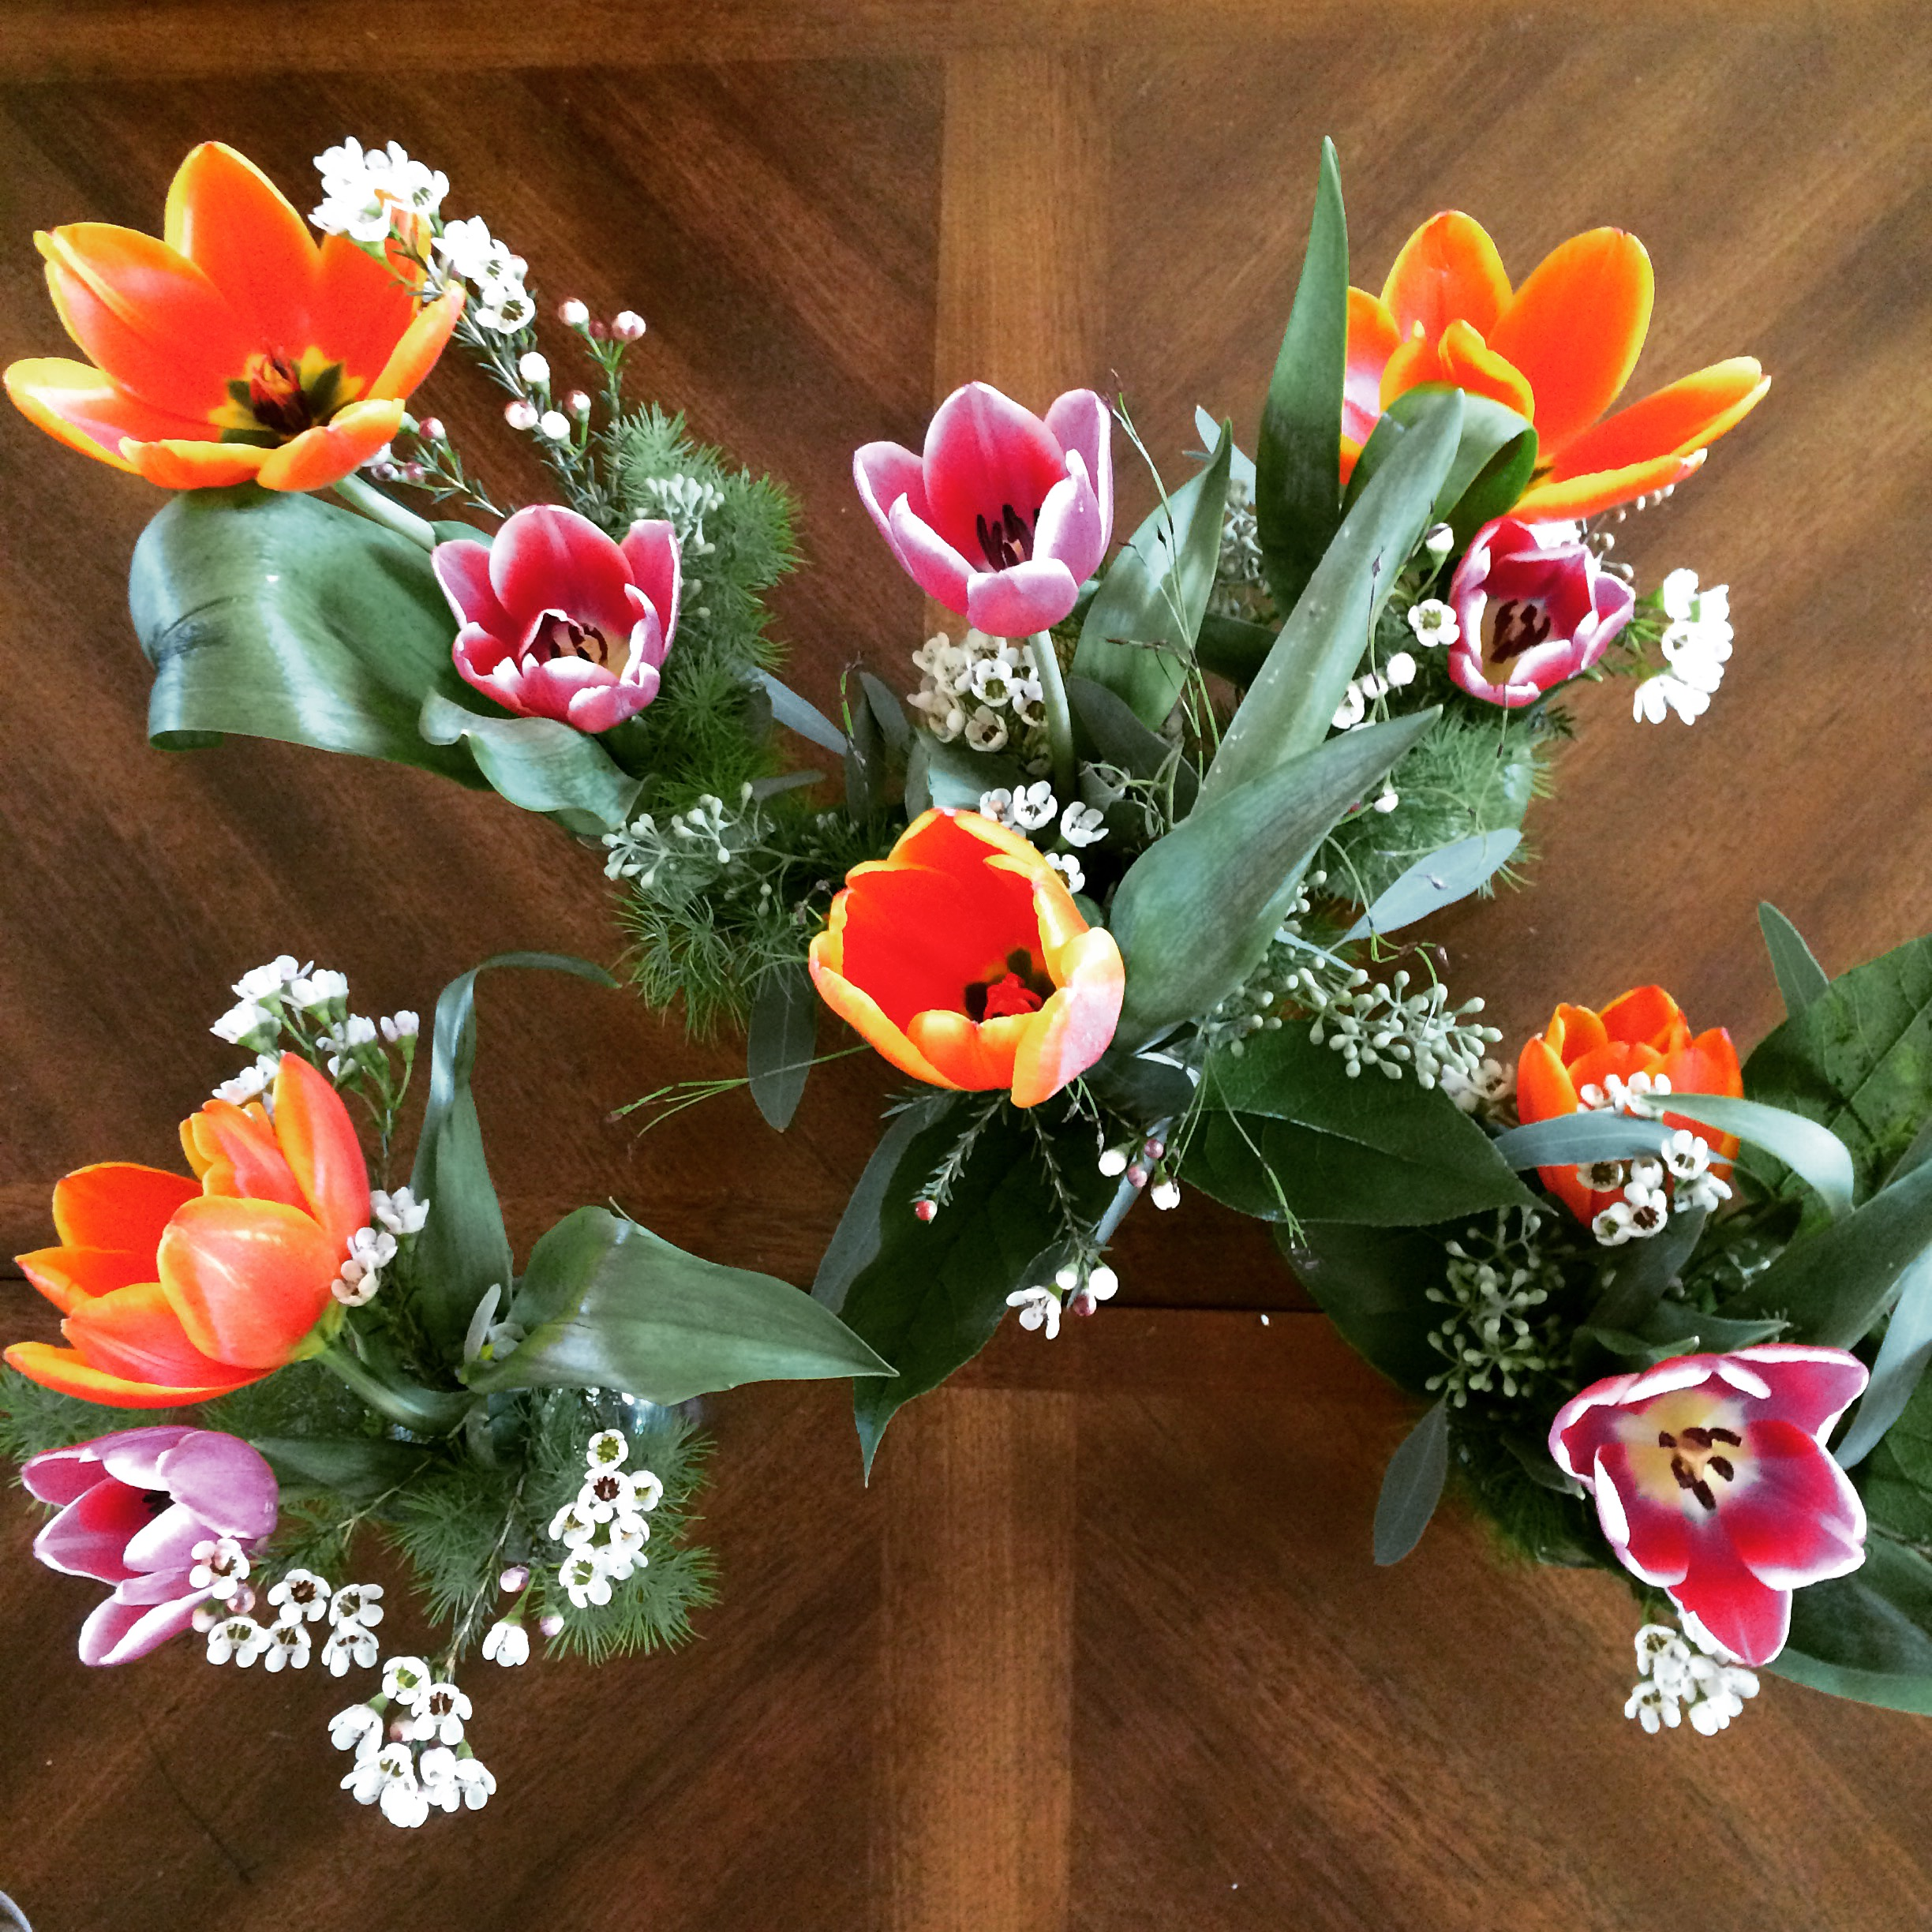 EVERYDAY - From birthdays to graduations, We have flowers for every occasion.